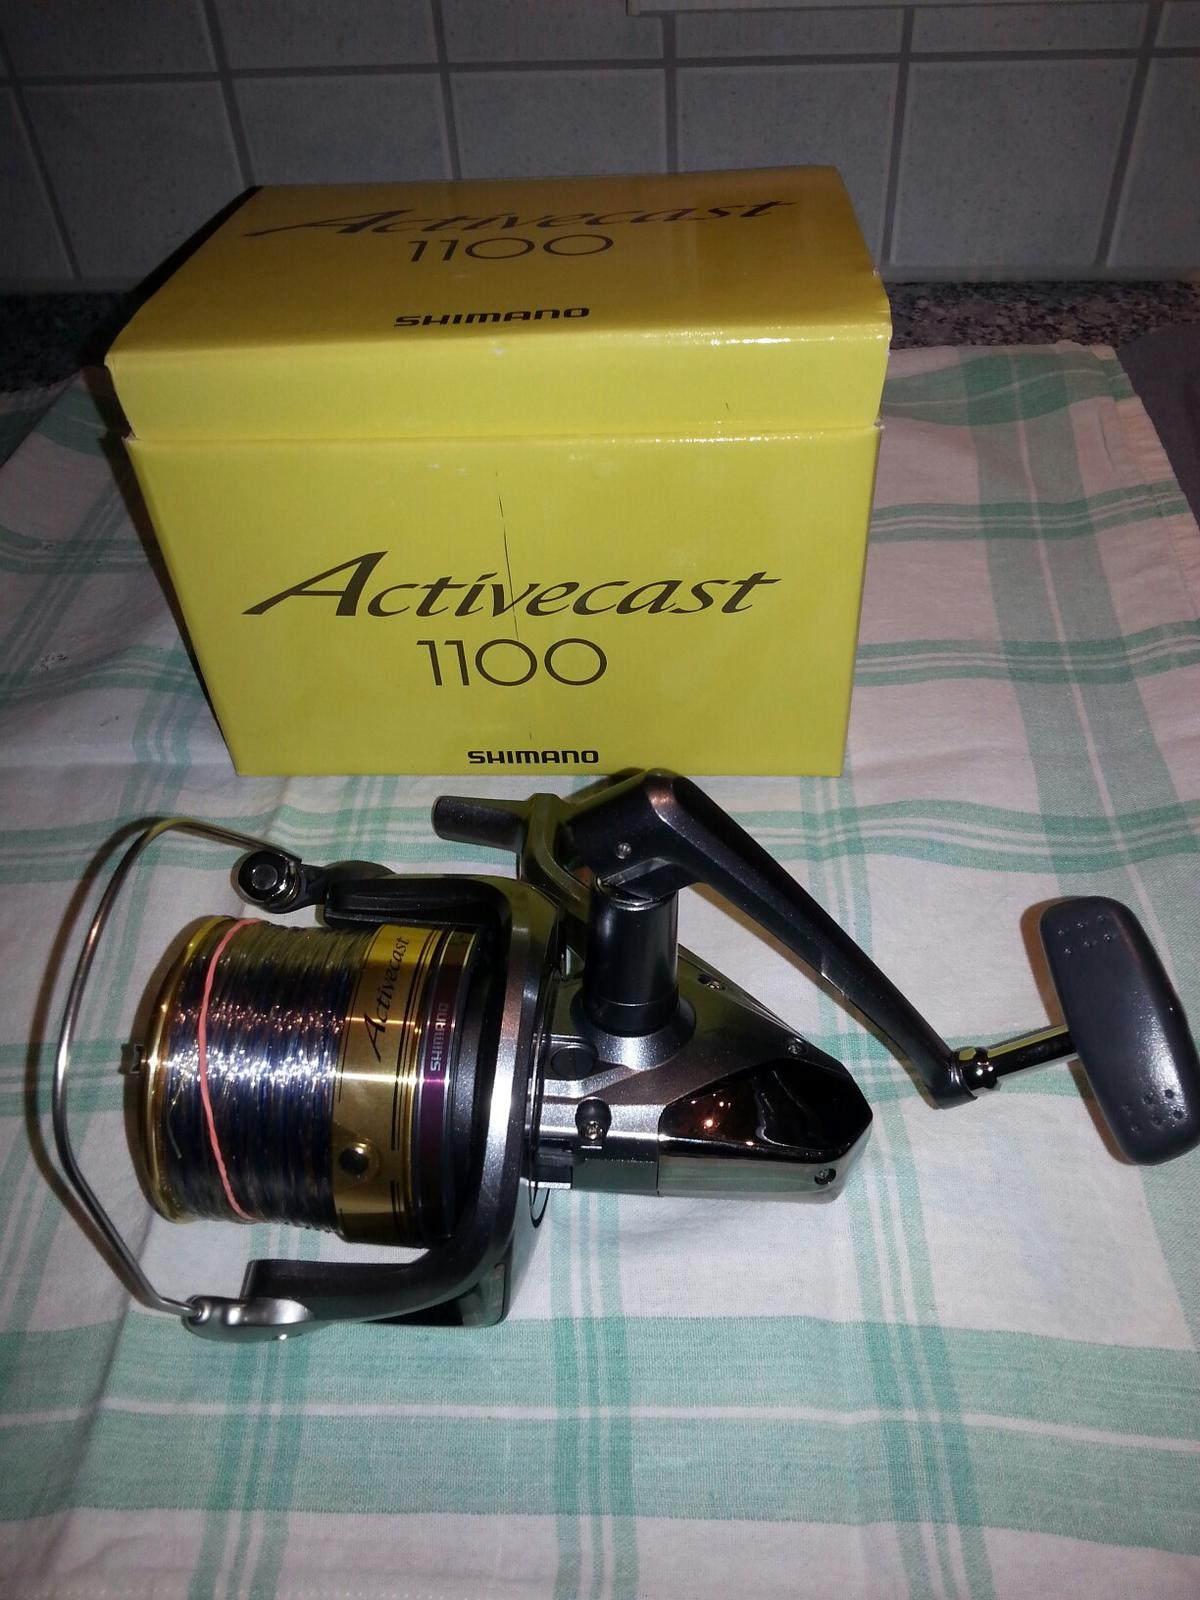 Angelrolle Shimano Activecast 1100